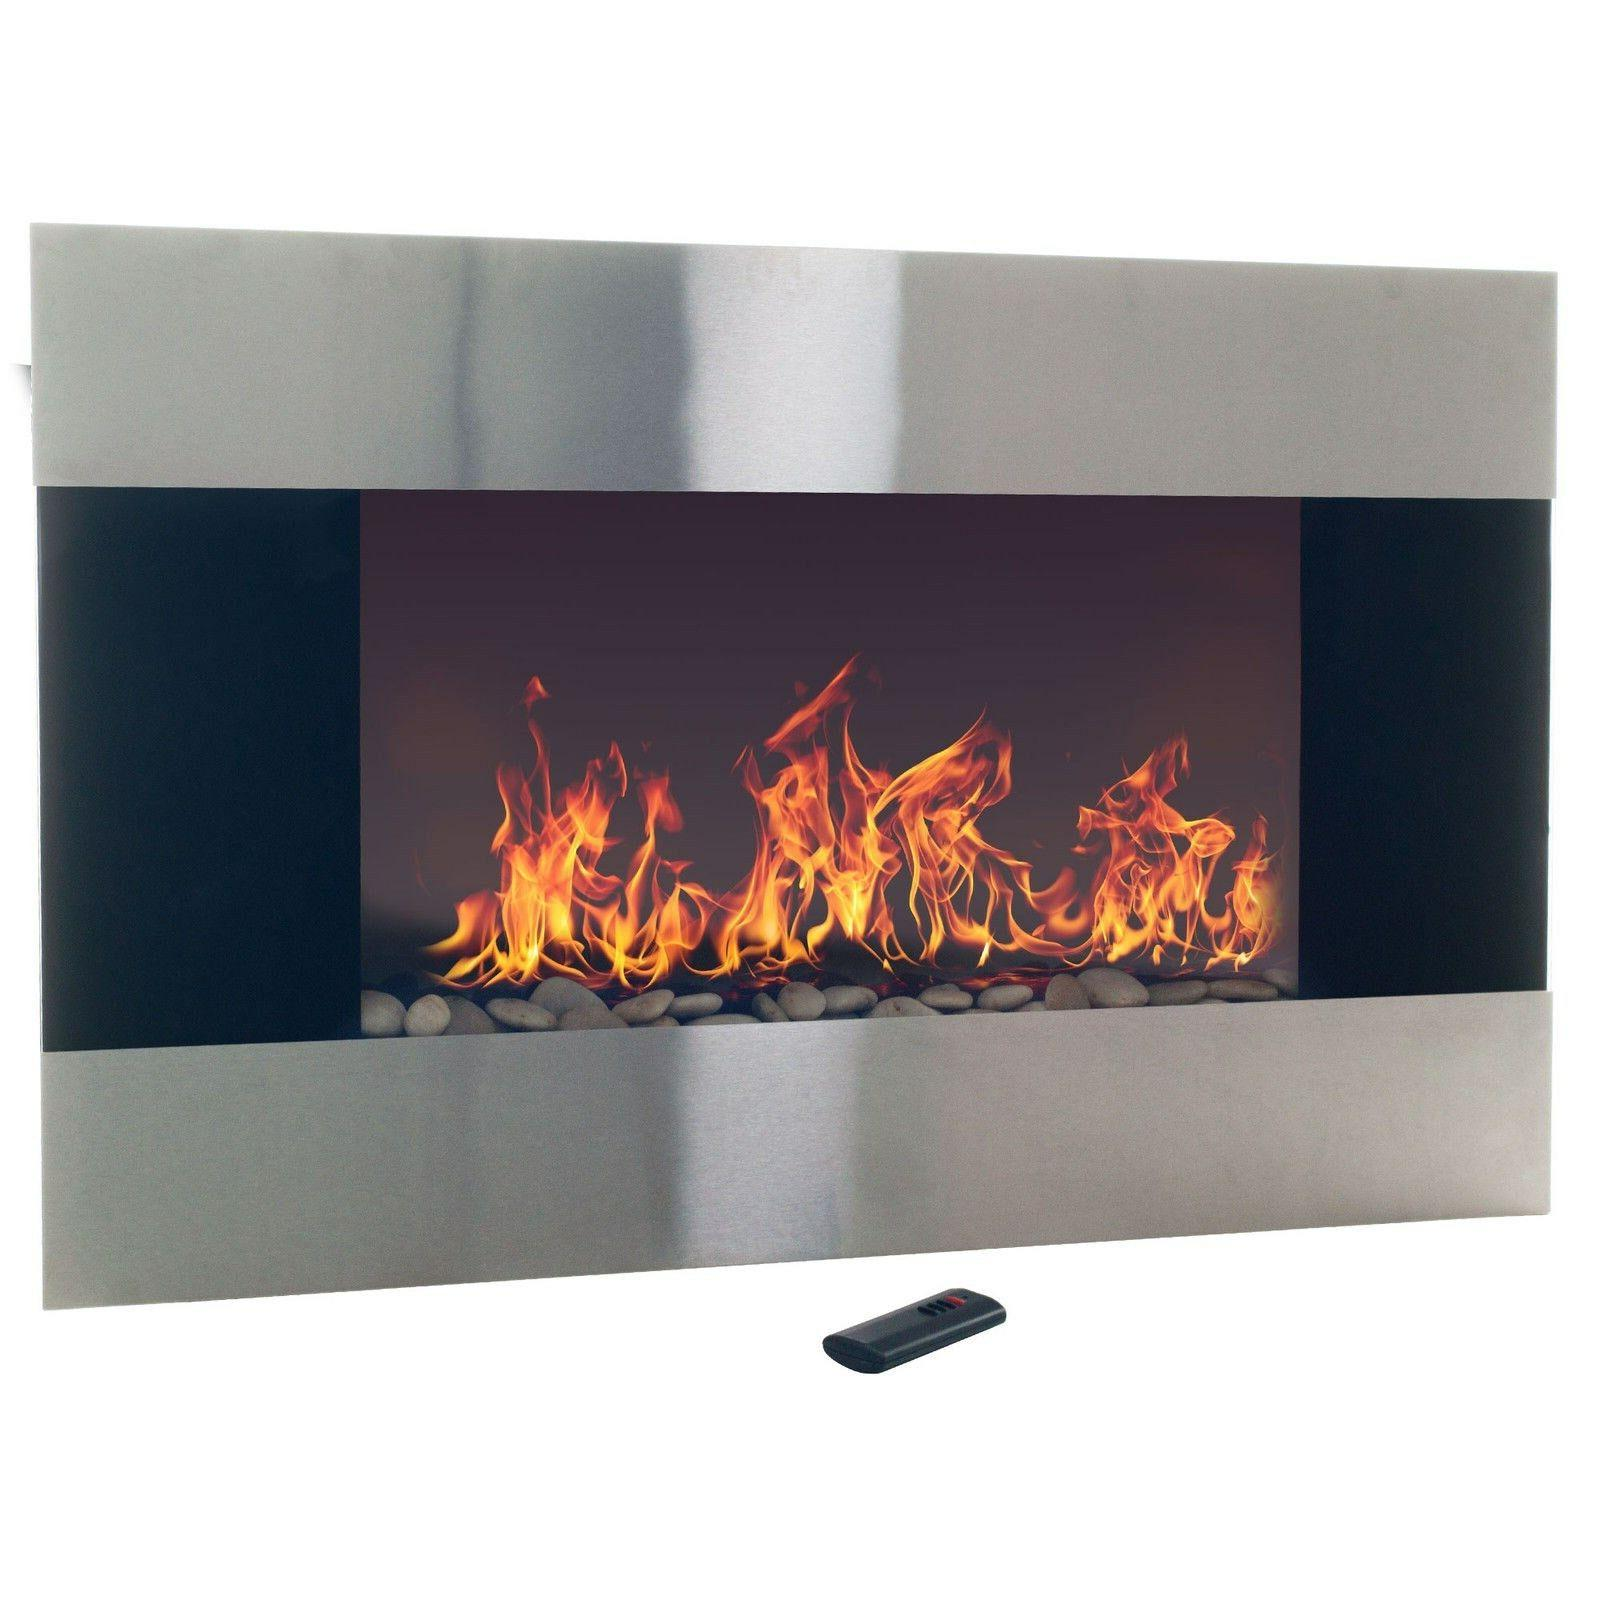 Stainless Electric Fireplace with Remote 35 x 1500W